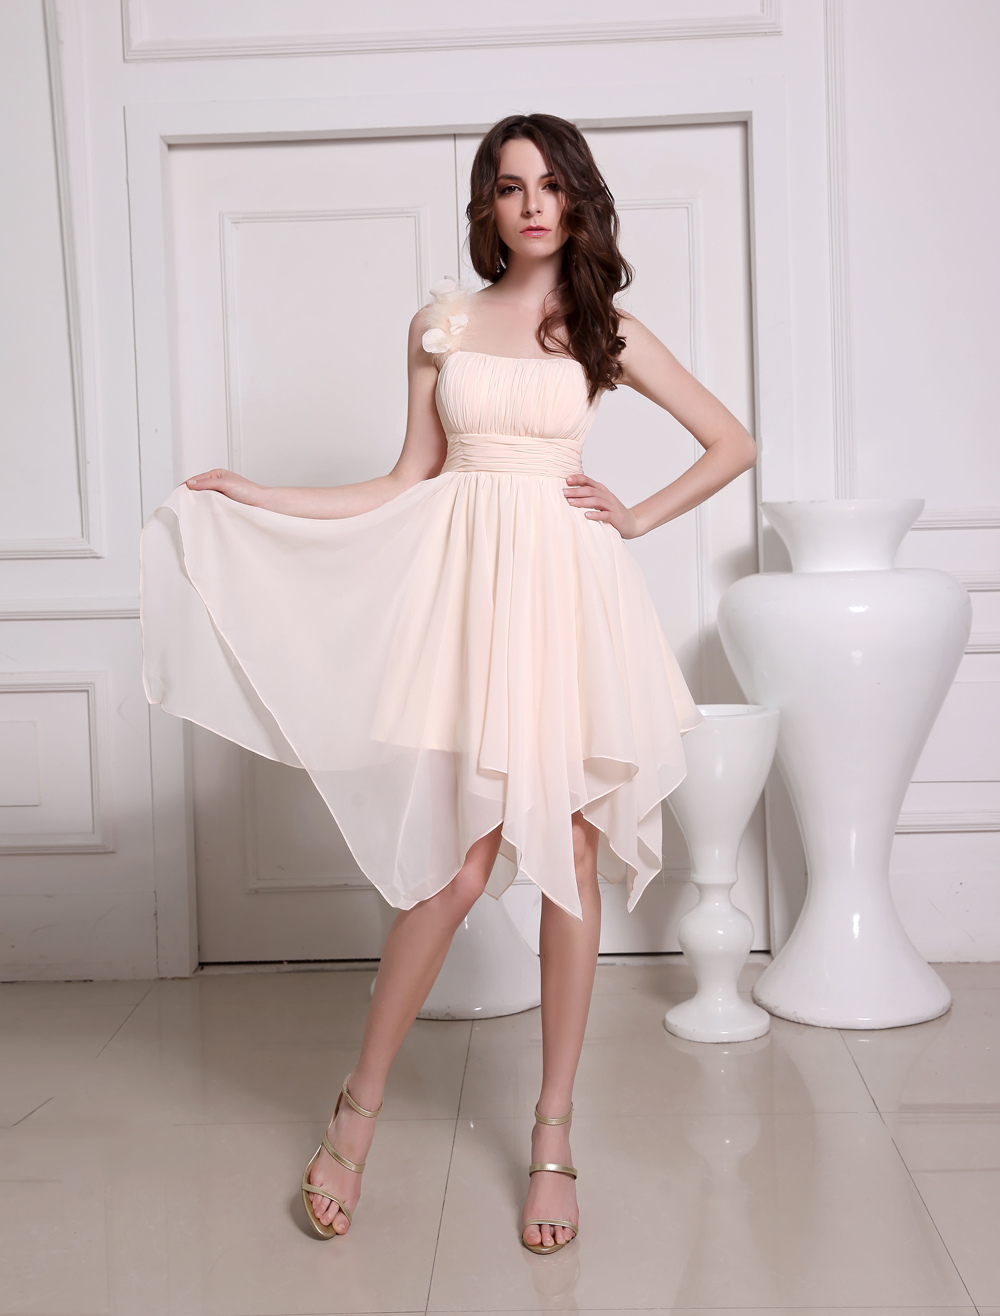 Pink Asymmetrical Bridesmaid Dress One-Shoulder Flowers Chiffon Dress